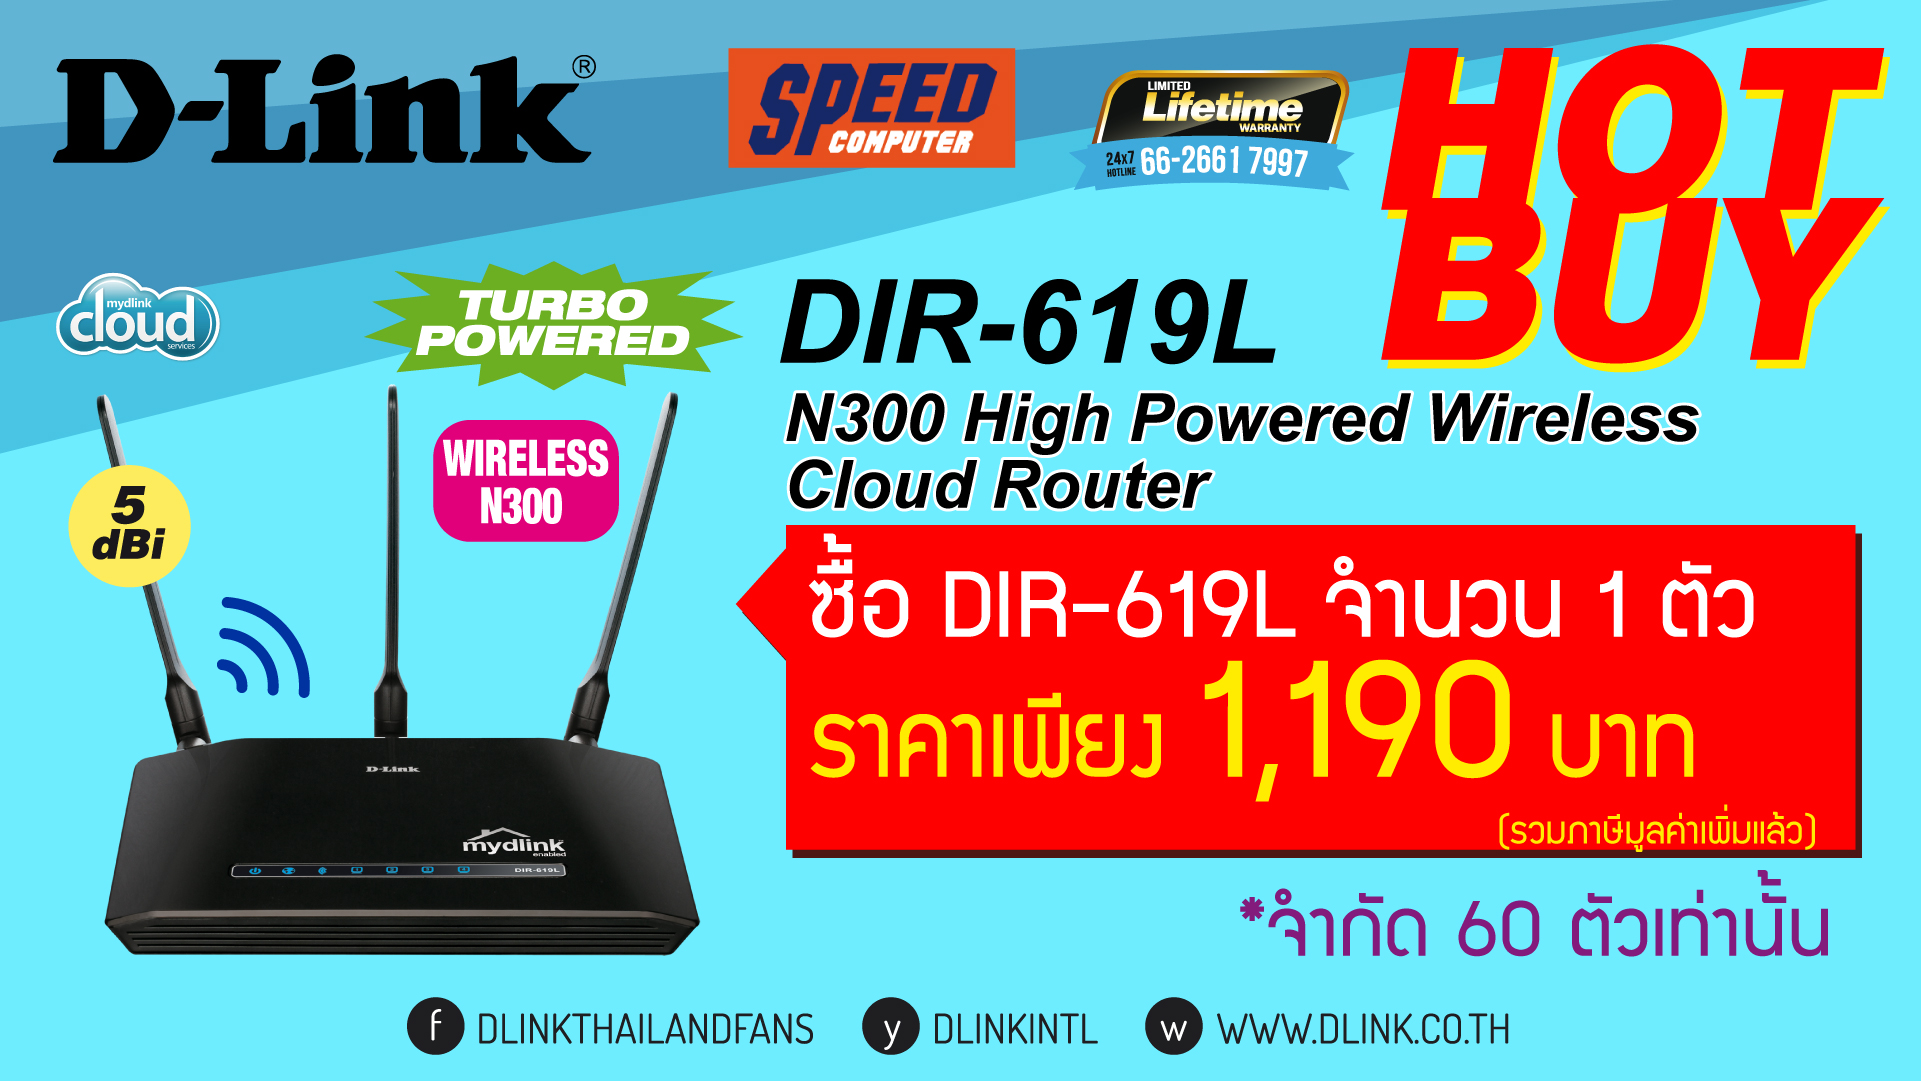 D-Link-Commart-Screen-for-Speed-March-16-08